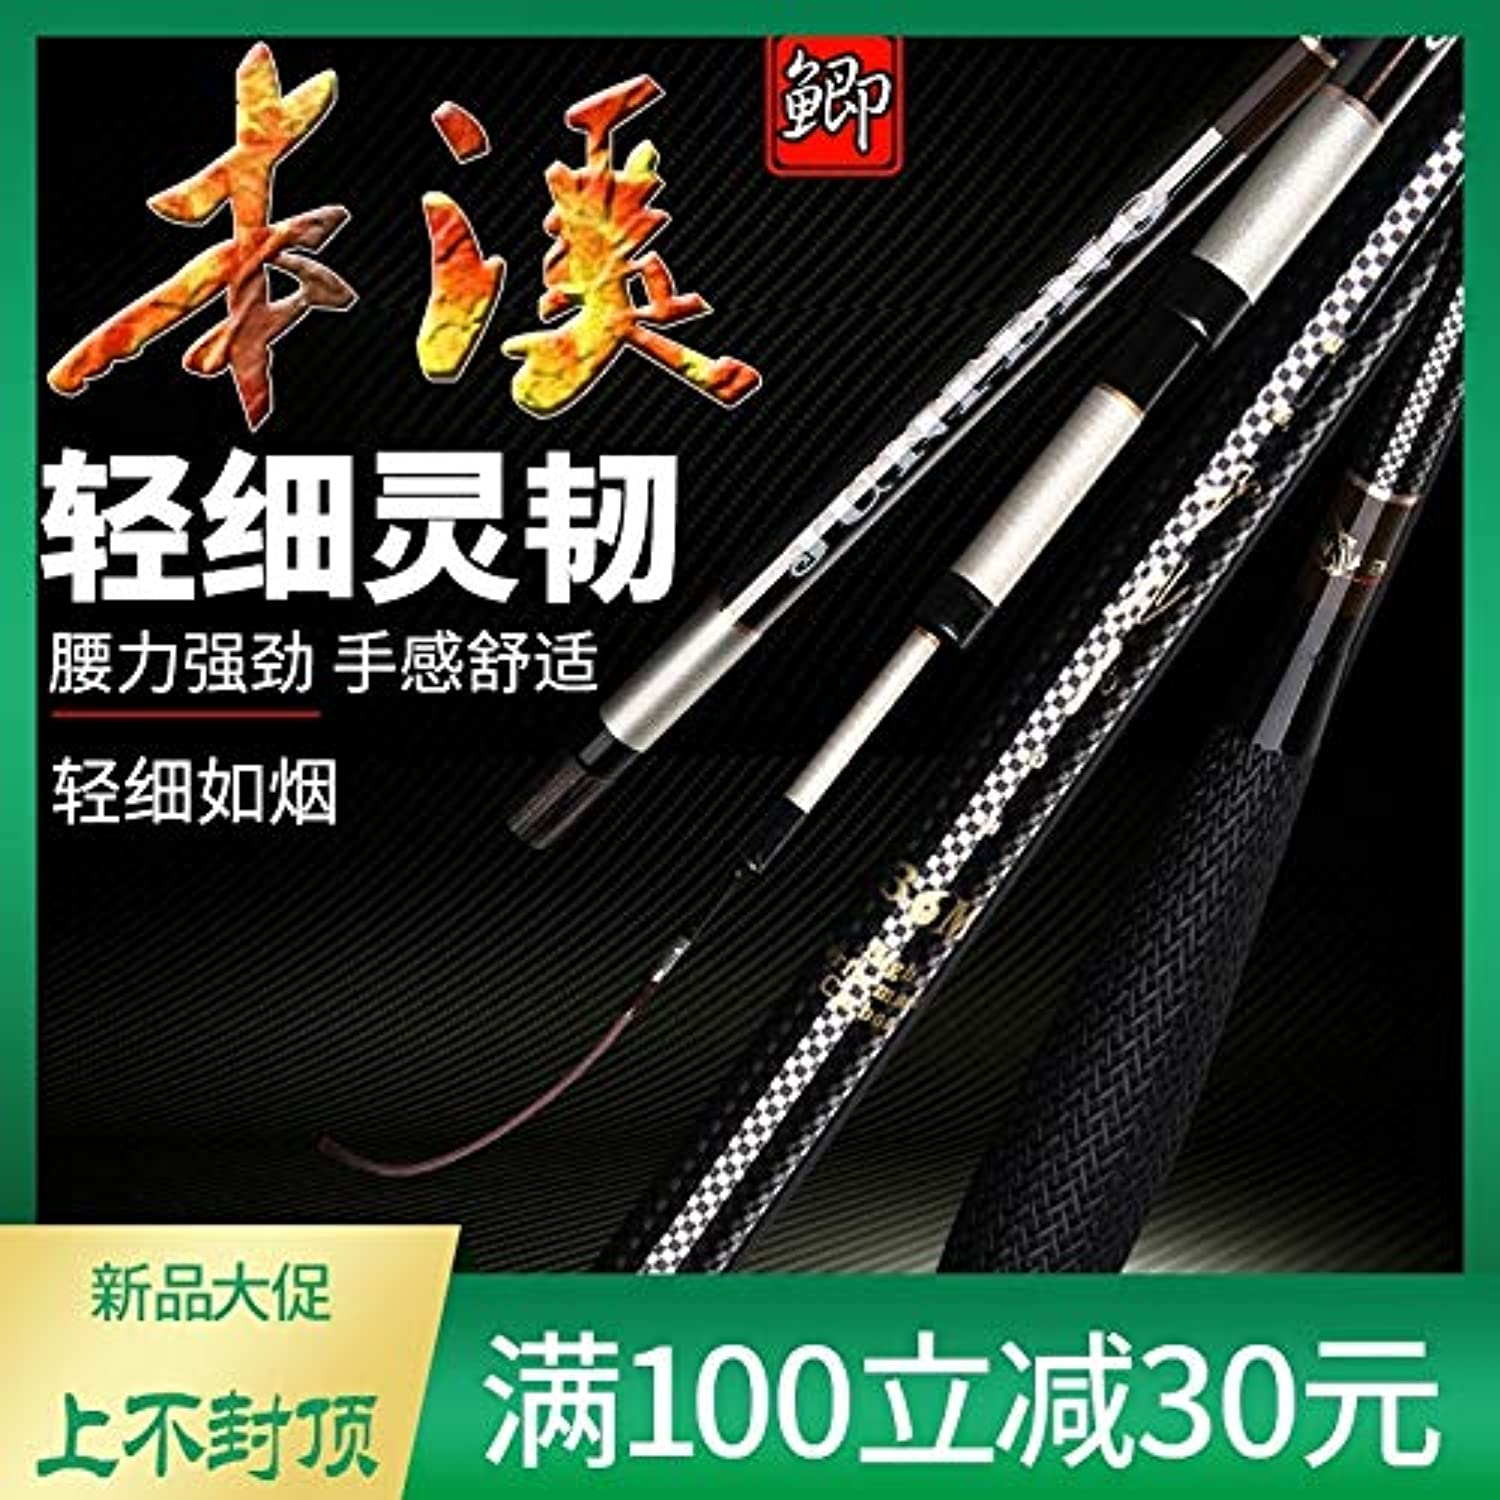 Japanese Imports of Carbon carp Fishing rods 5.4 m Superfine Ultralight Rod superhard 28 Tune Hand Pole Rod 3.6 m fine Product